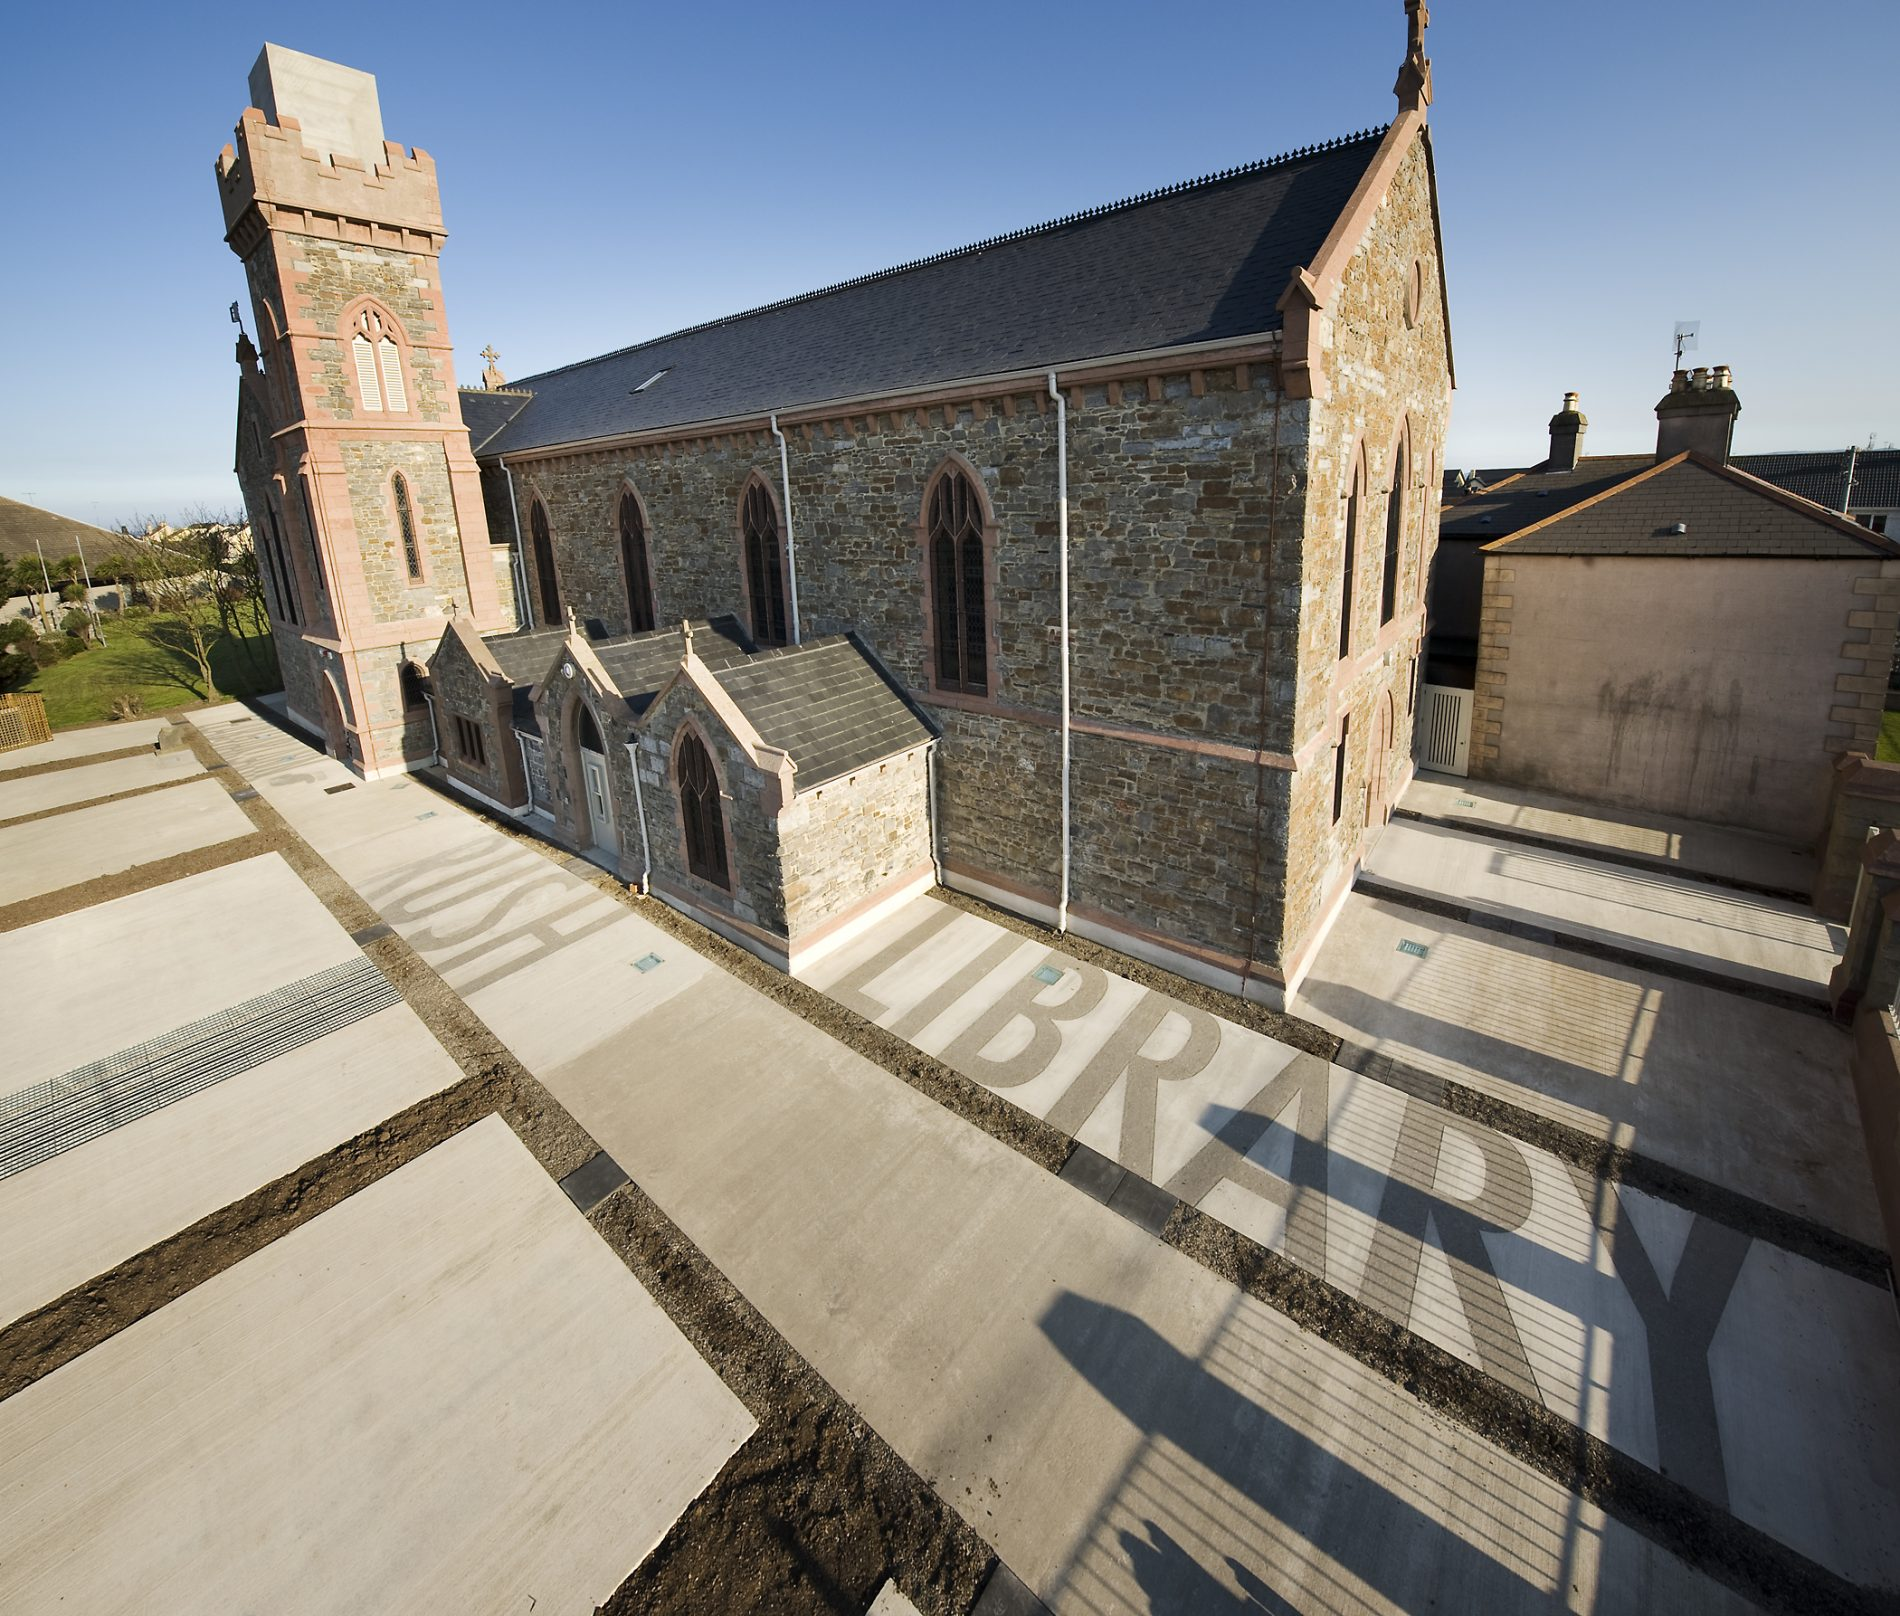 Rush Library - Shortlisted for World Heritage Building of the Year